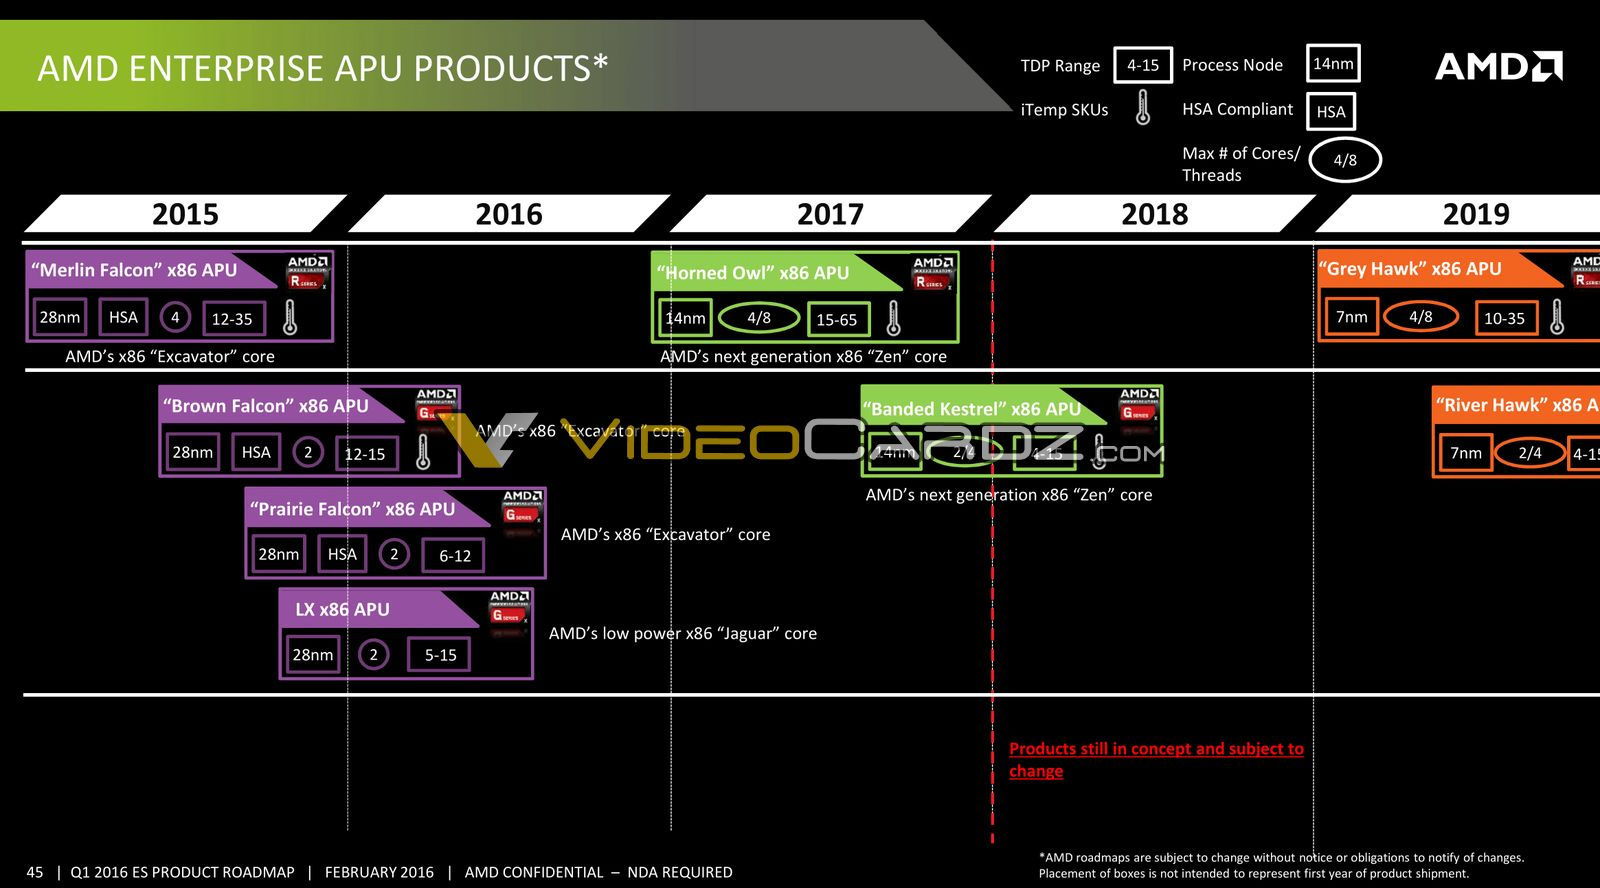 AMD Zen Based Enterprise CPU / APU Roadmap Leaked: 14nm Naples With 32 Cores in 2017, 7nm Starship With 48 Cores  AMD-Enterprise-APU-2015-2019-Roadmap_1-1